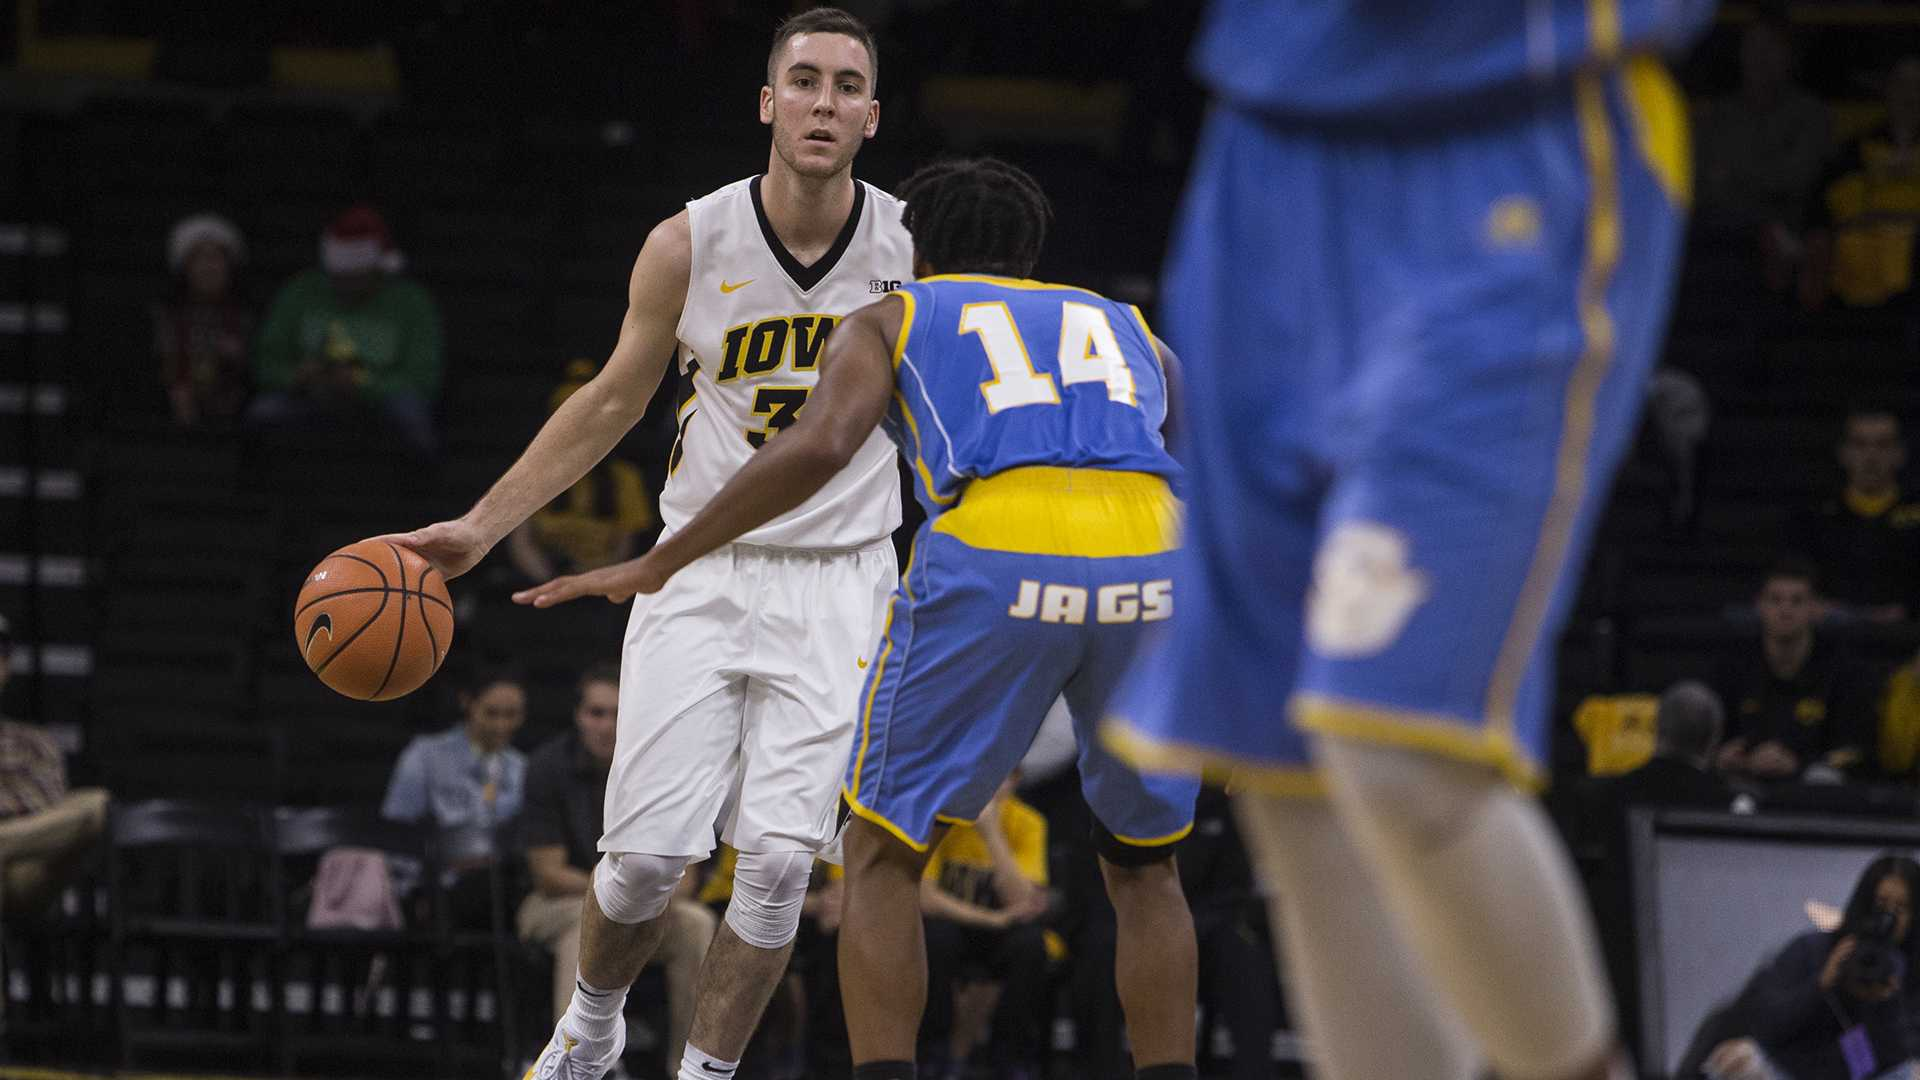 Iowa guard Connor McCaffery (30) looks for an open teammate during the game between Iowa and Southern at Carver-Hawkeye Arena on Sunday, Dec. 10. Iowa went on to defeat Southern 91-60. (Ben Allan Smith/The Daily Iowan)